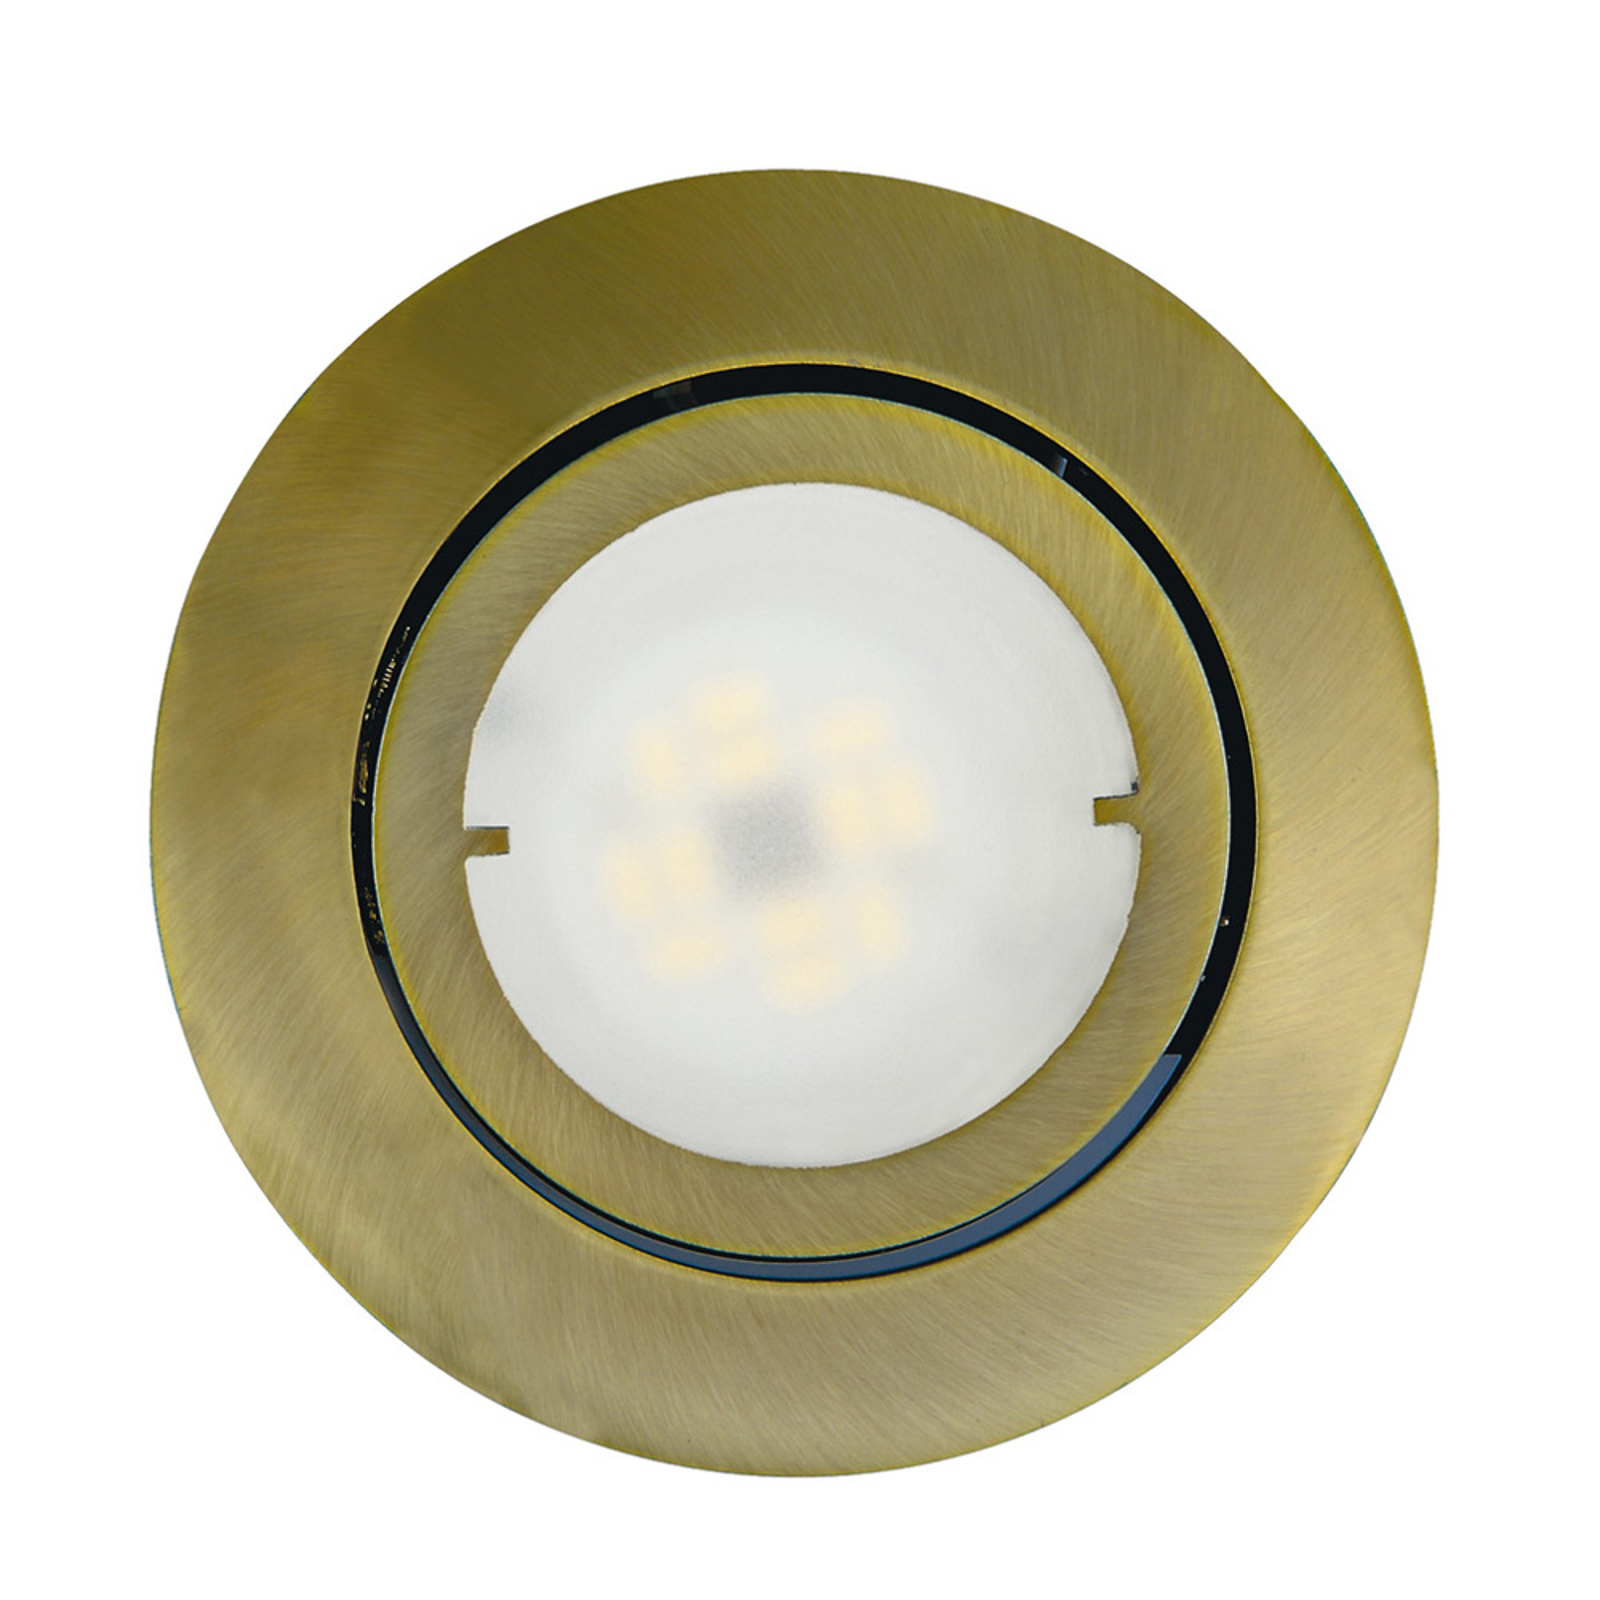 Pivotable LED recessed light Joanie, antique brass_1524112_1